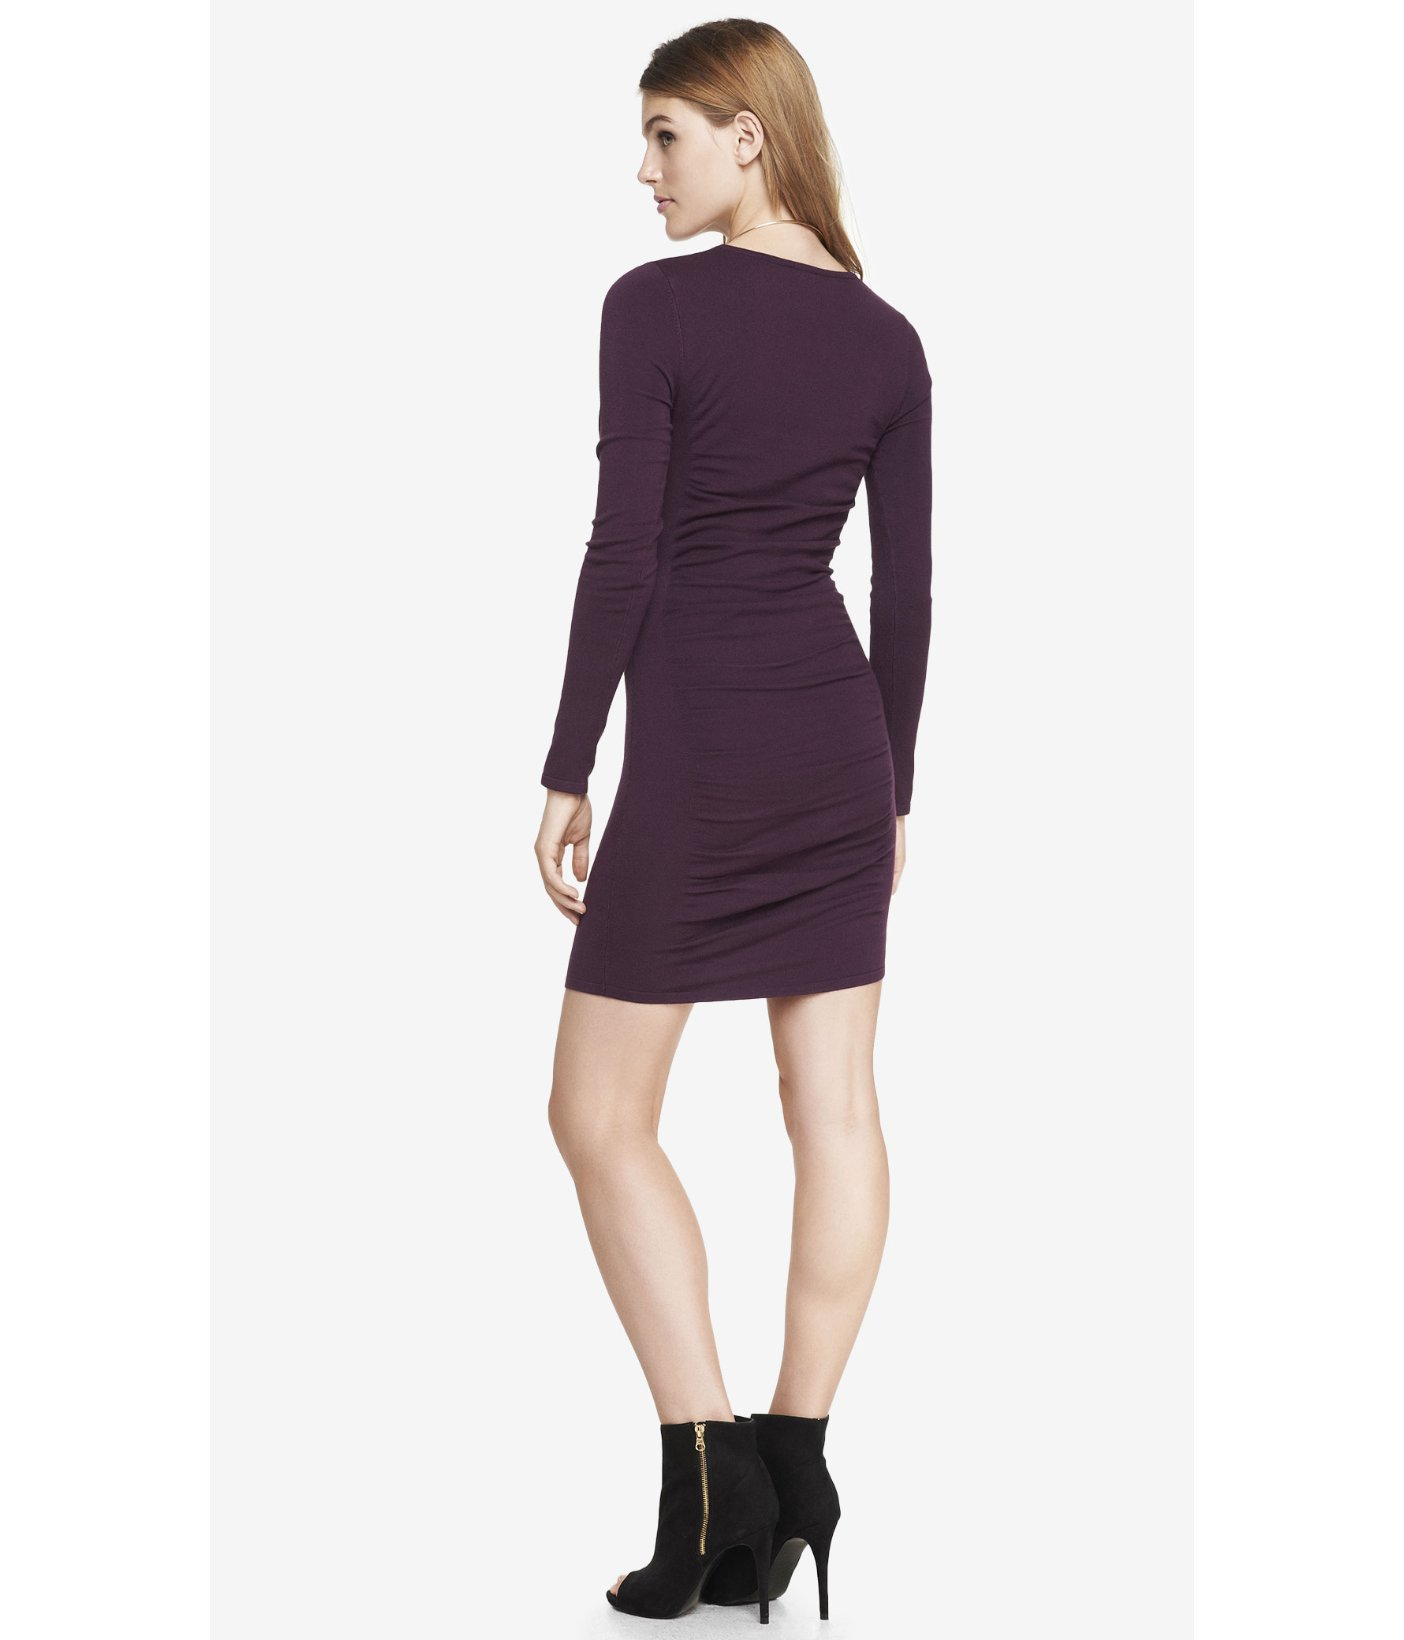 Express Burgundy Ruched Sweater Dress in Purple | Lyst